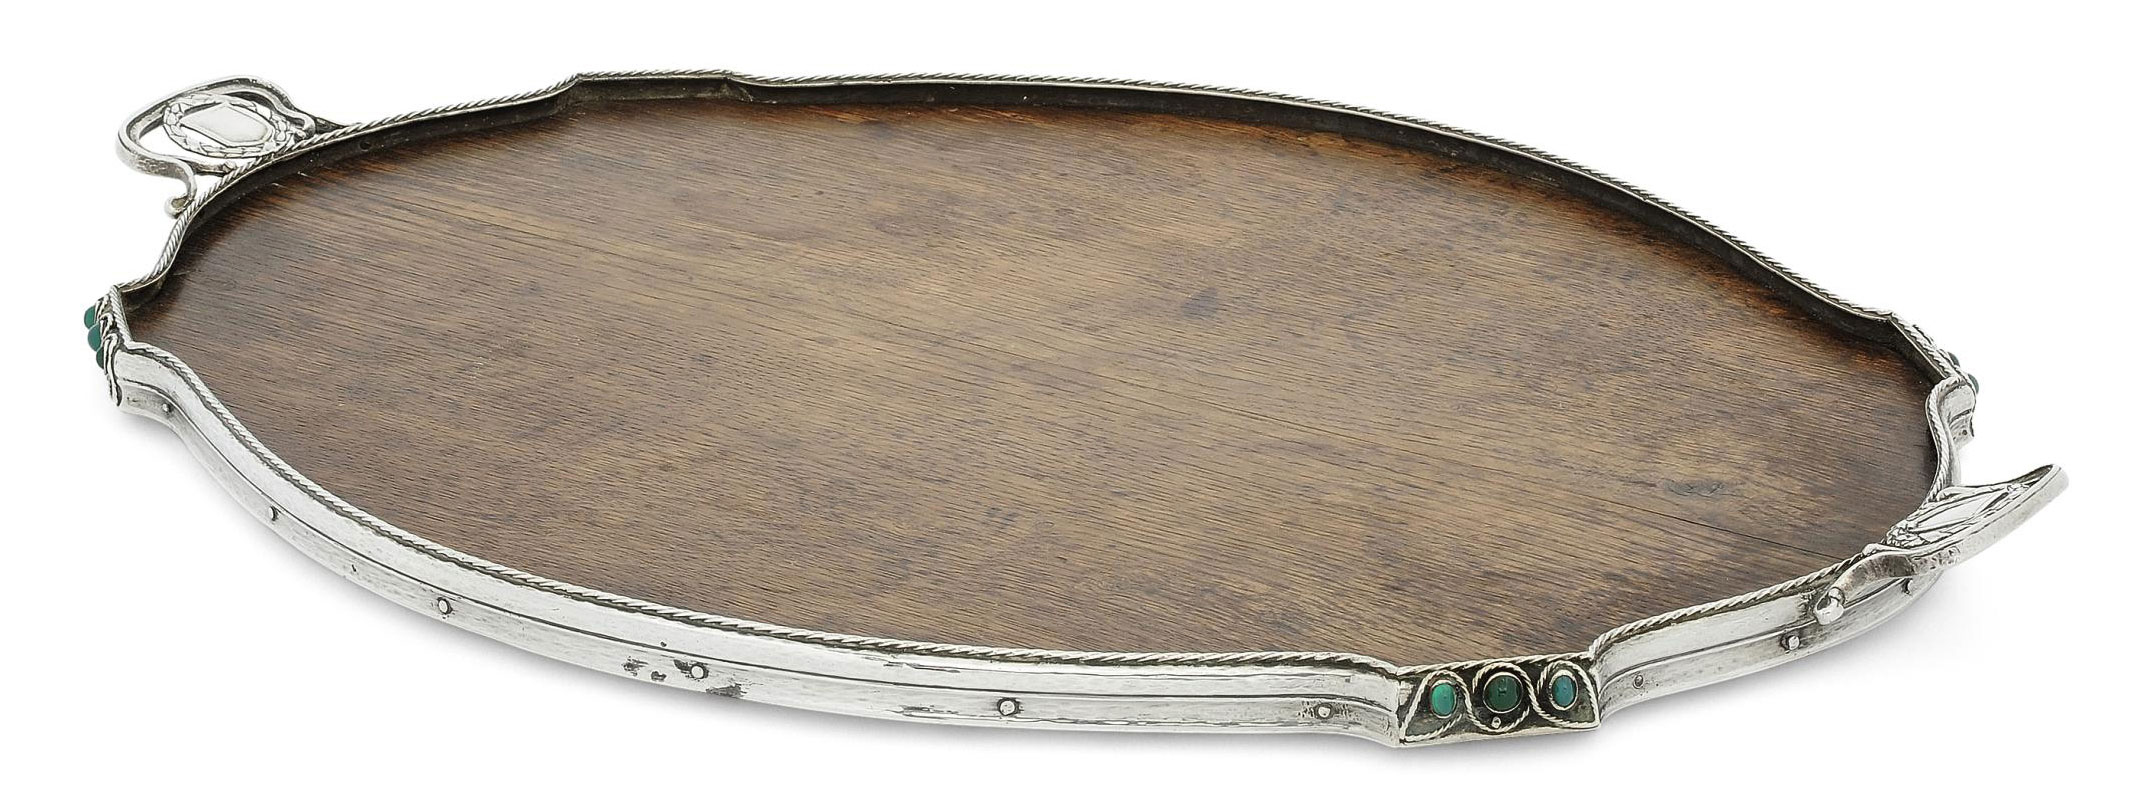 A GEORGE V SILVER AND 'GEM'-STONE MOUNTED WOOD TRAY